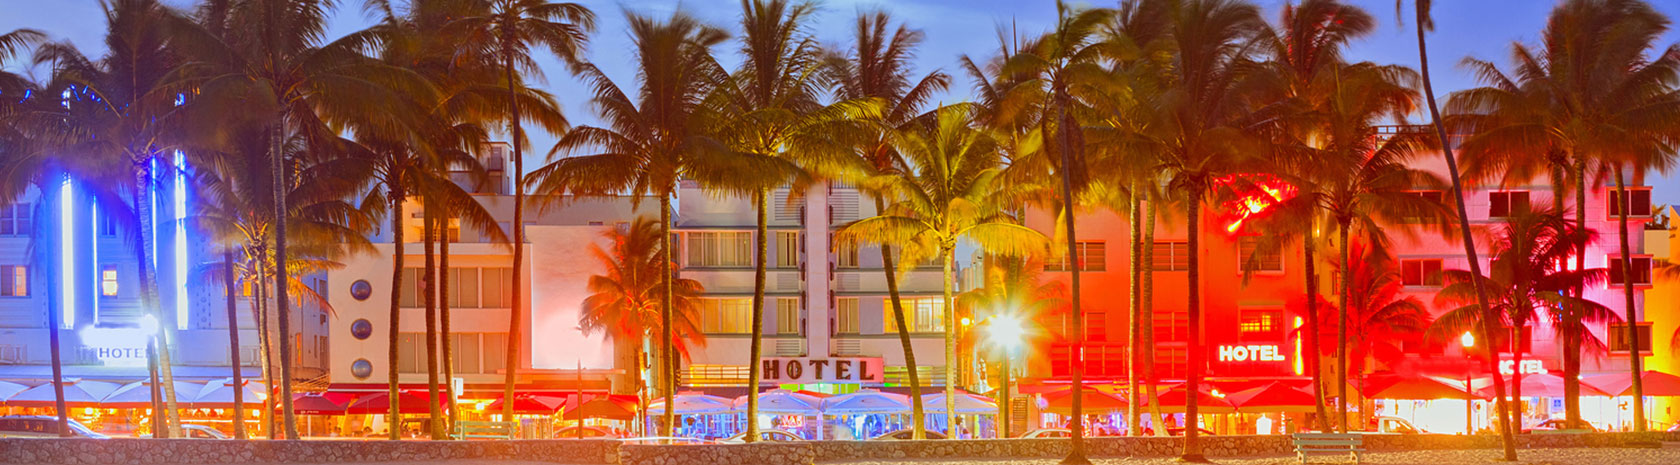 A string of 5 hotels, each with different colored lights shining, adjacent to the beach and palm trees in the foreground